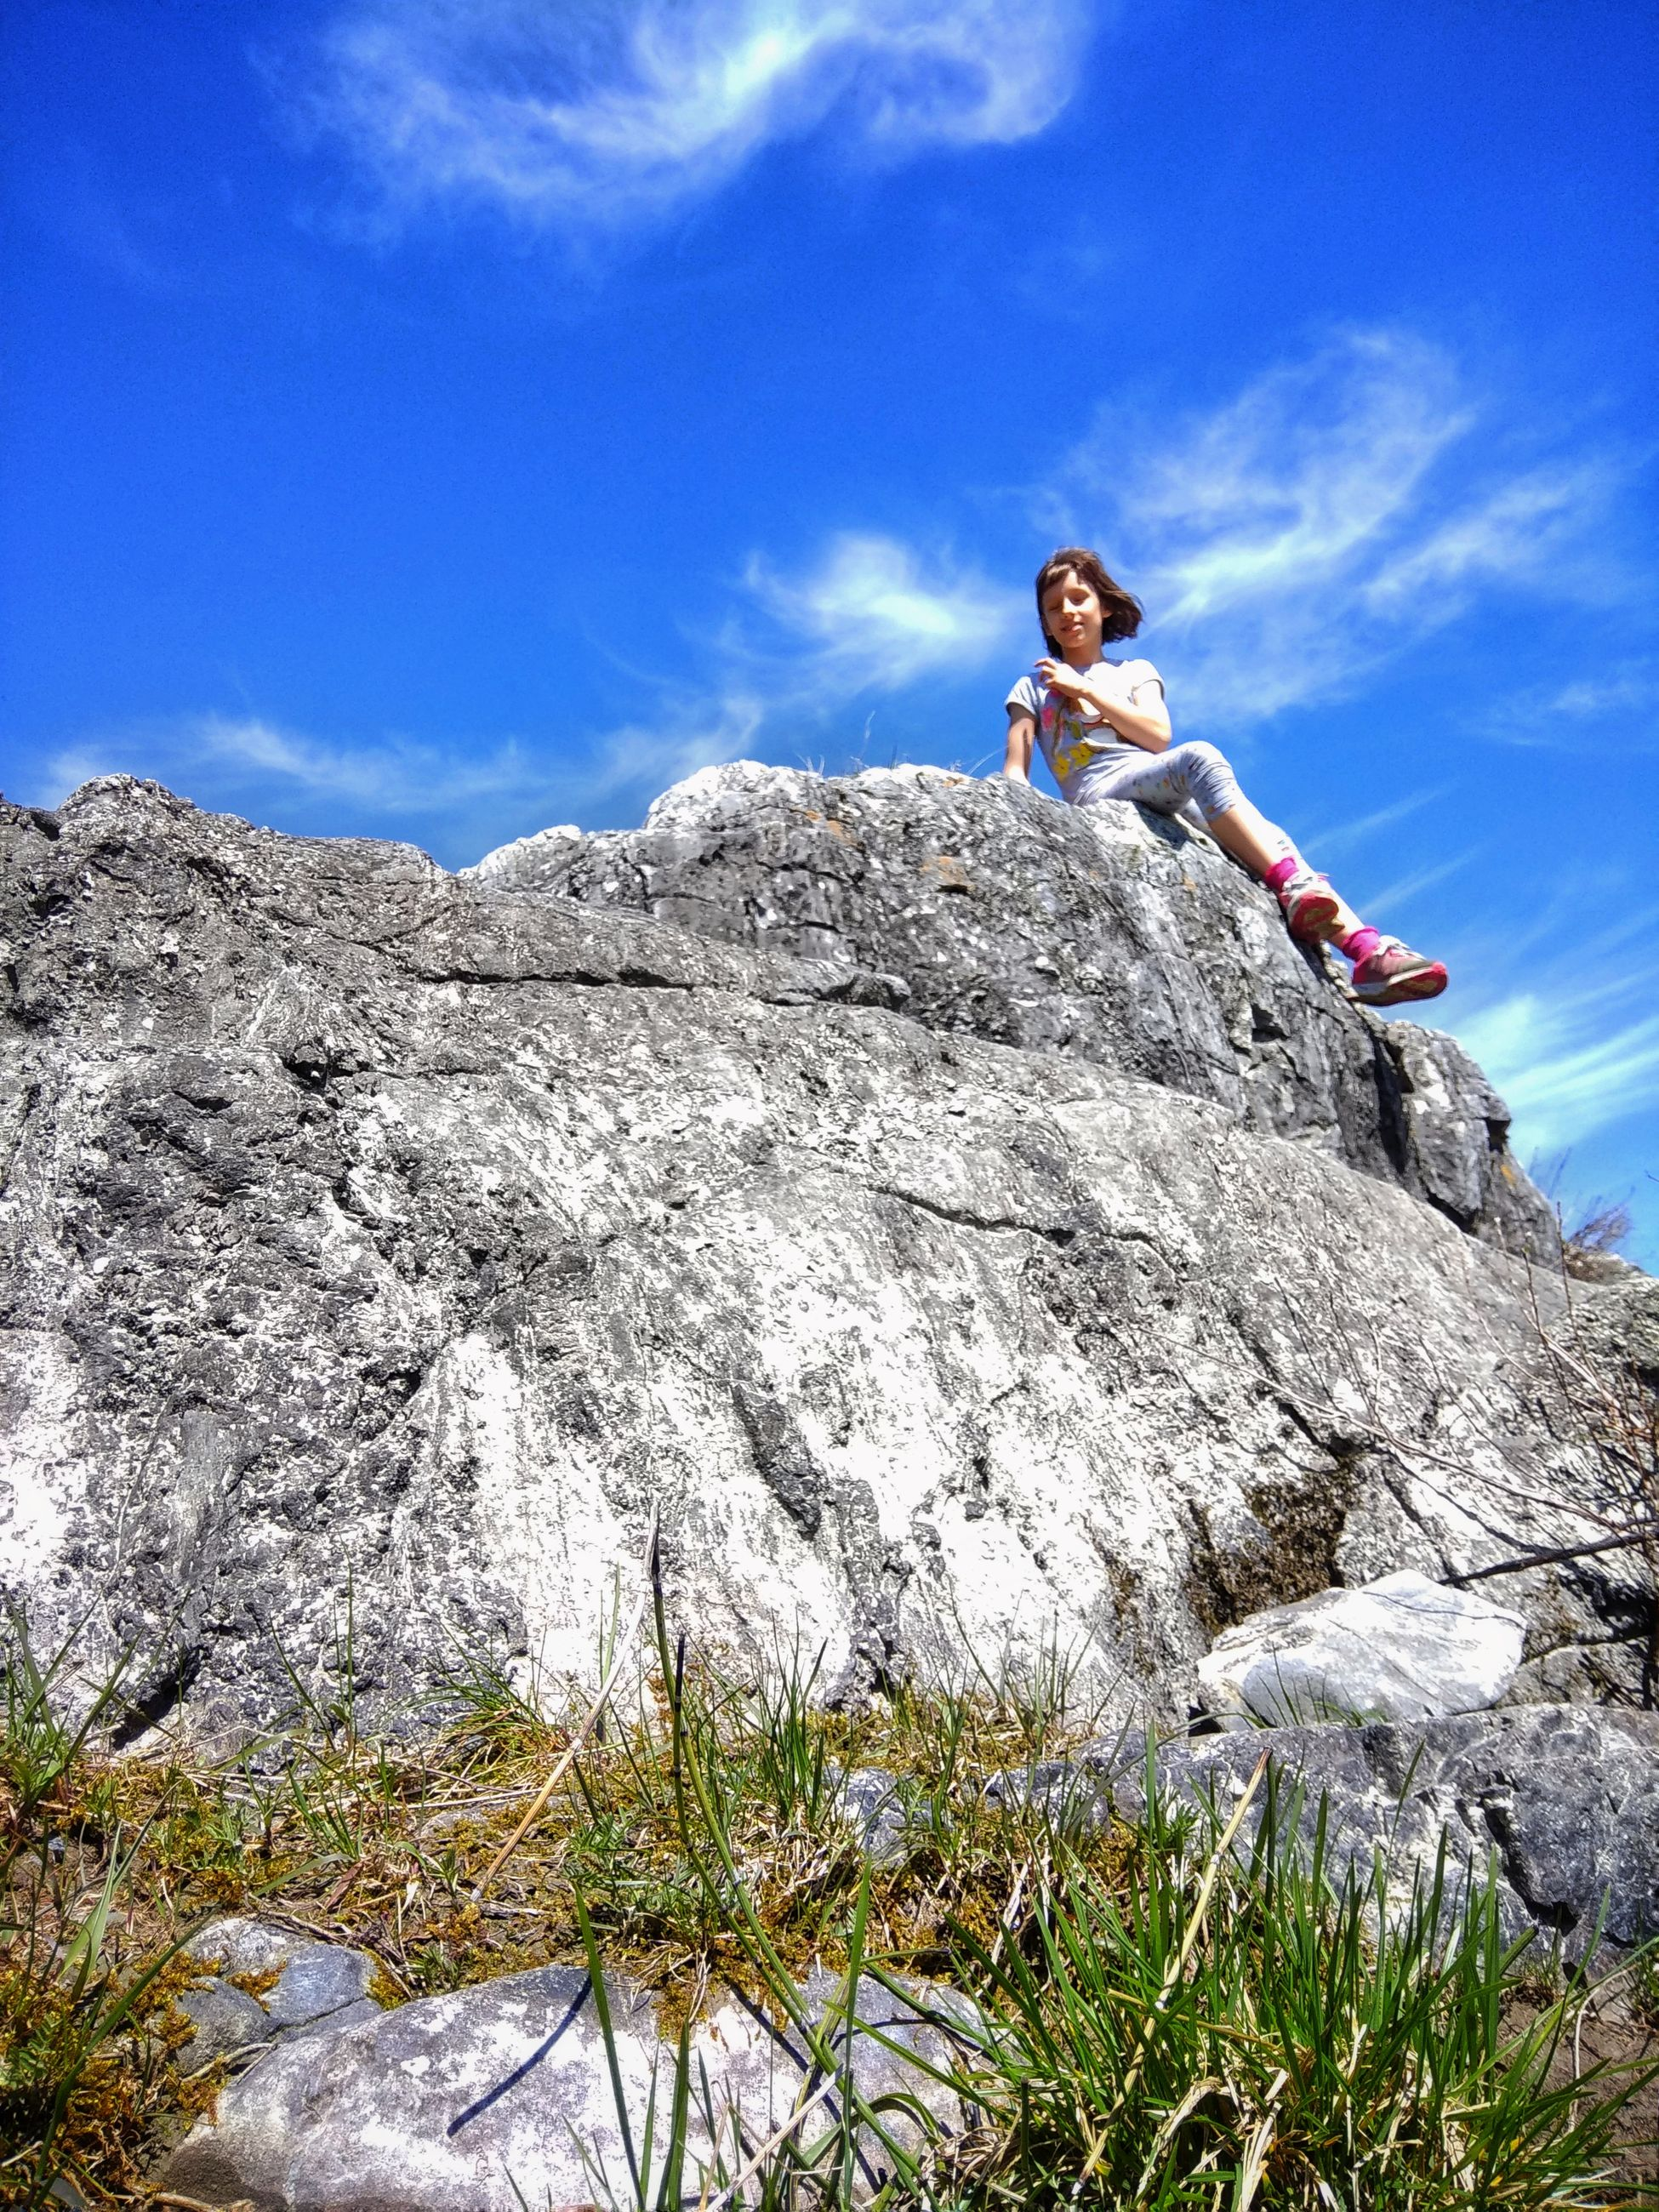 leisure activity, one person, low angle view, sky, rock, real people, solid, lifestyles, full length, casual clothing, rock - object, young adult, climbing, adventure, sport, nature, women, day, cloud - sky, outdoors